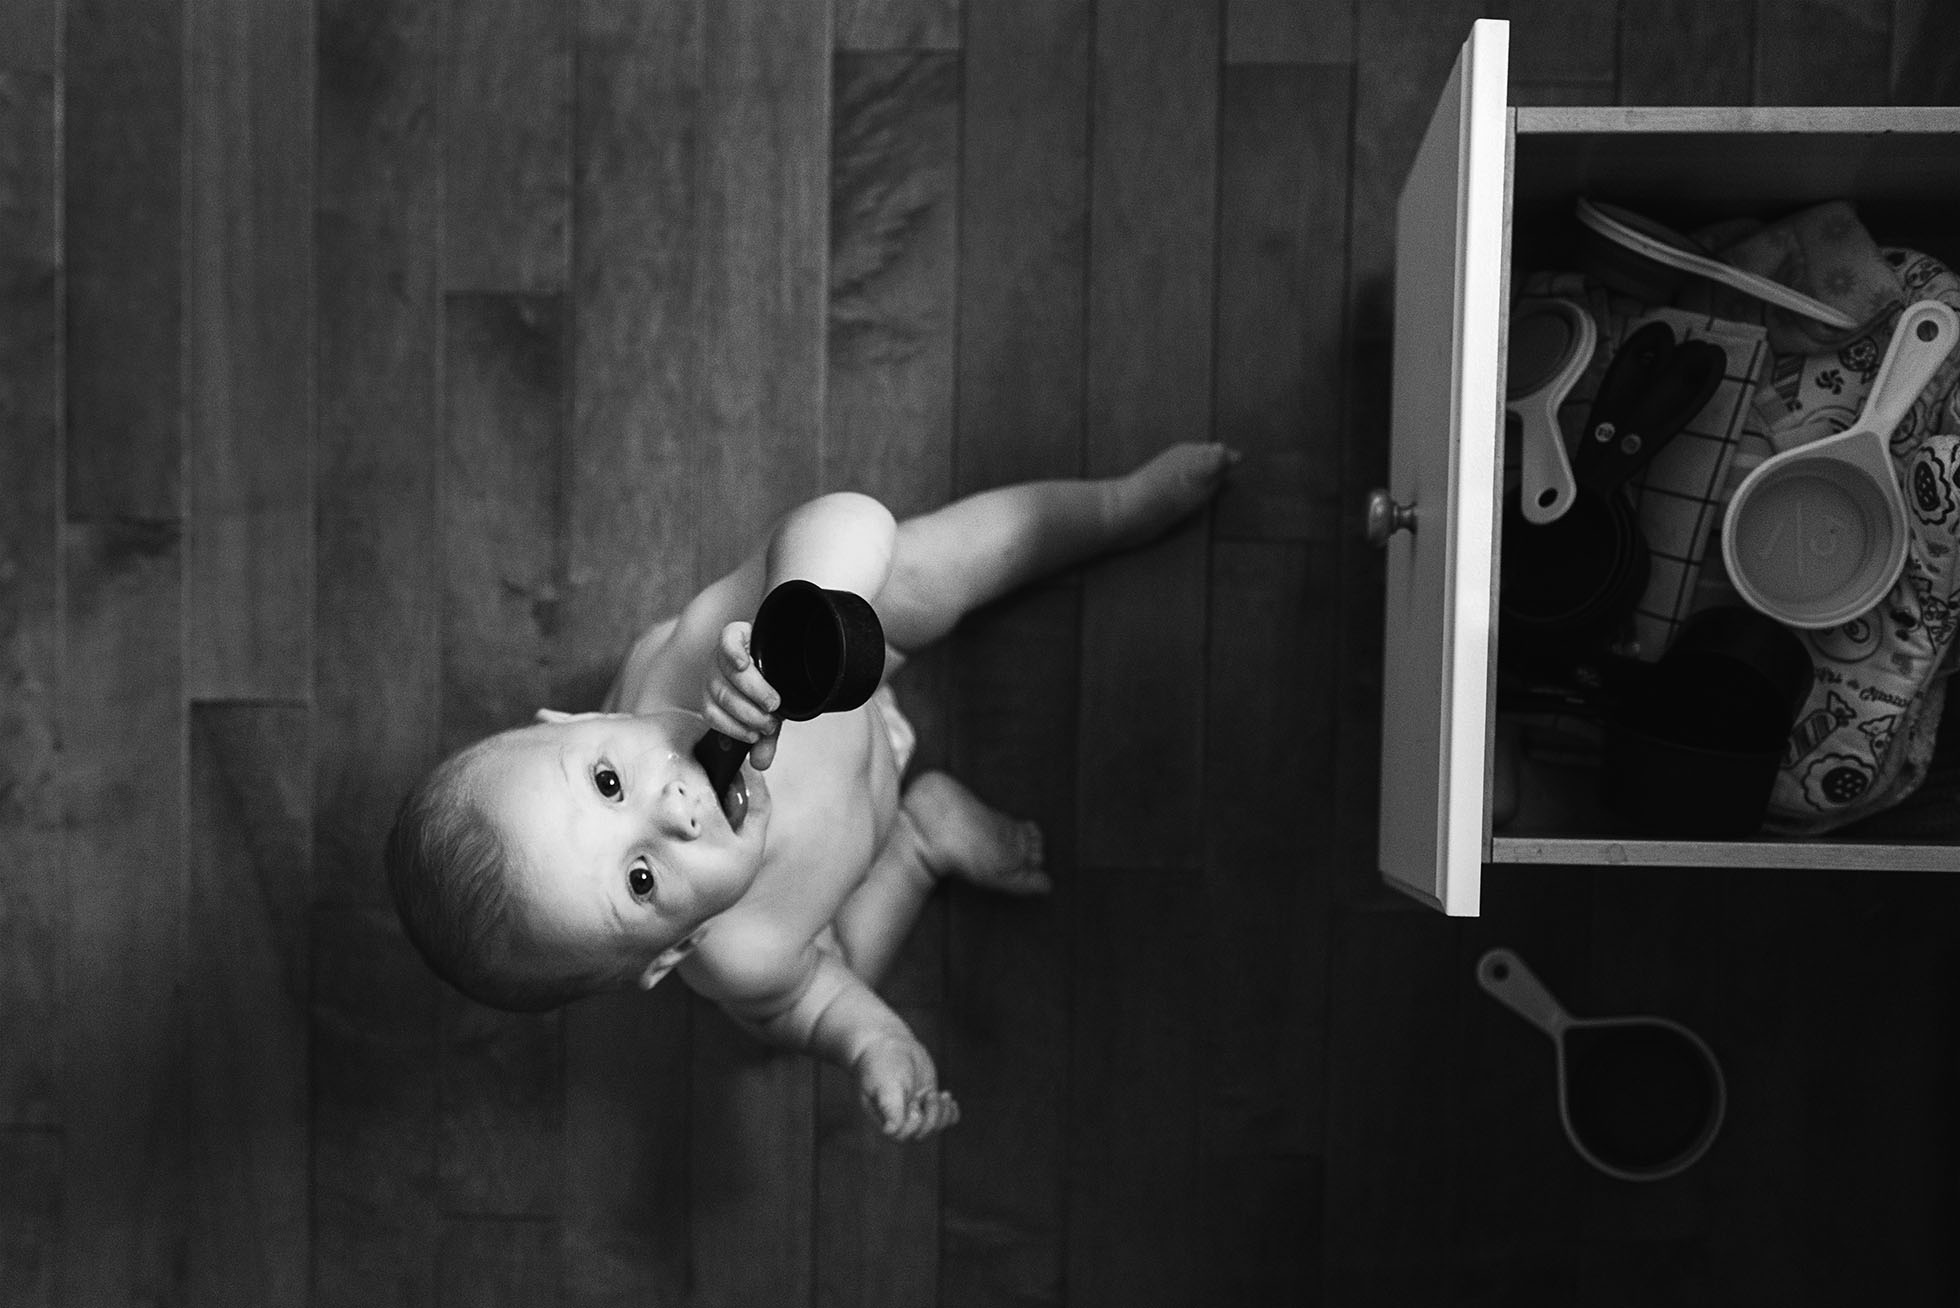 photo of toddler playing wtih kitchen utensils from above